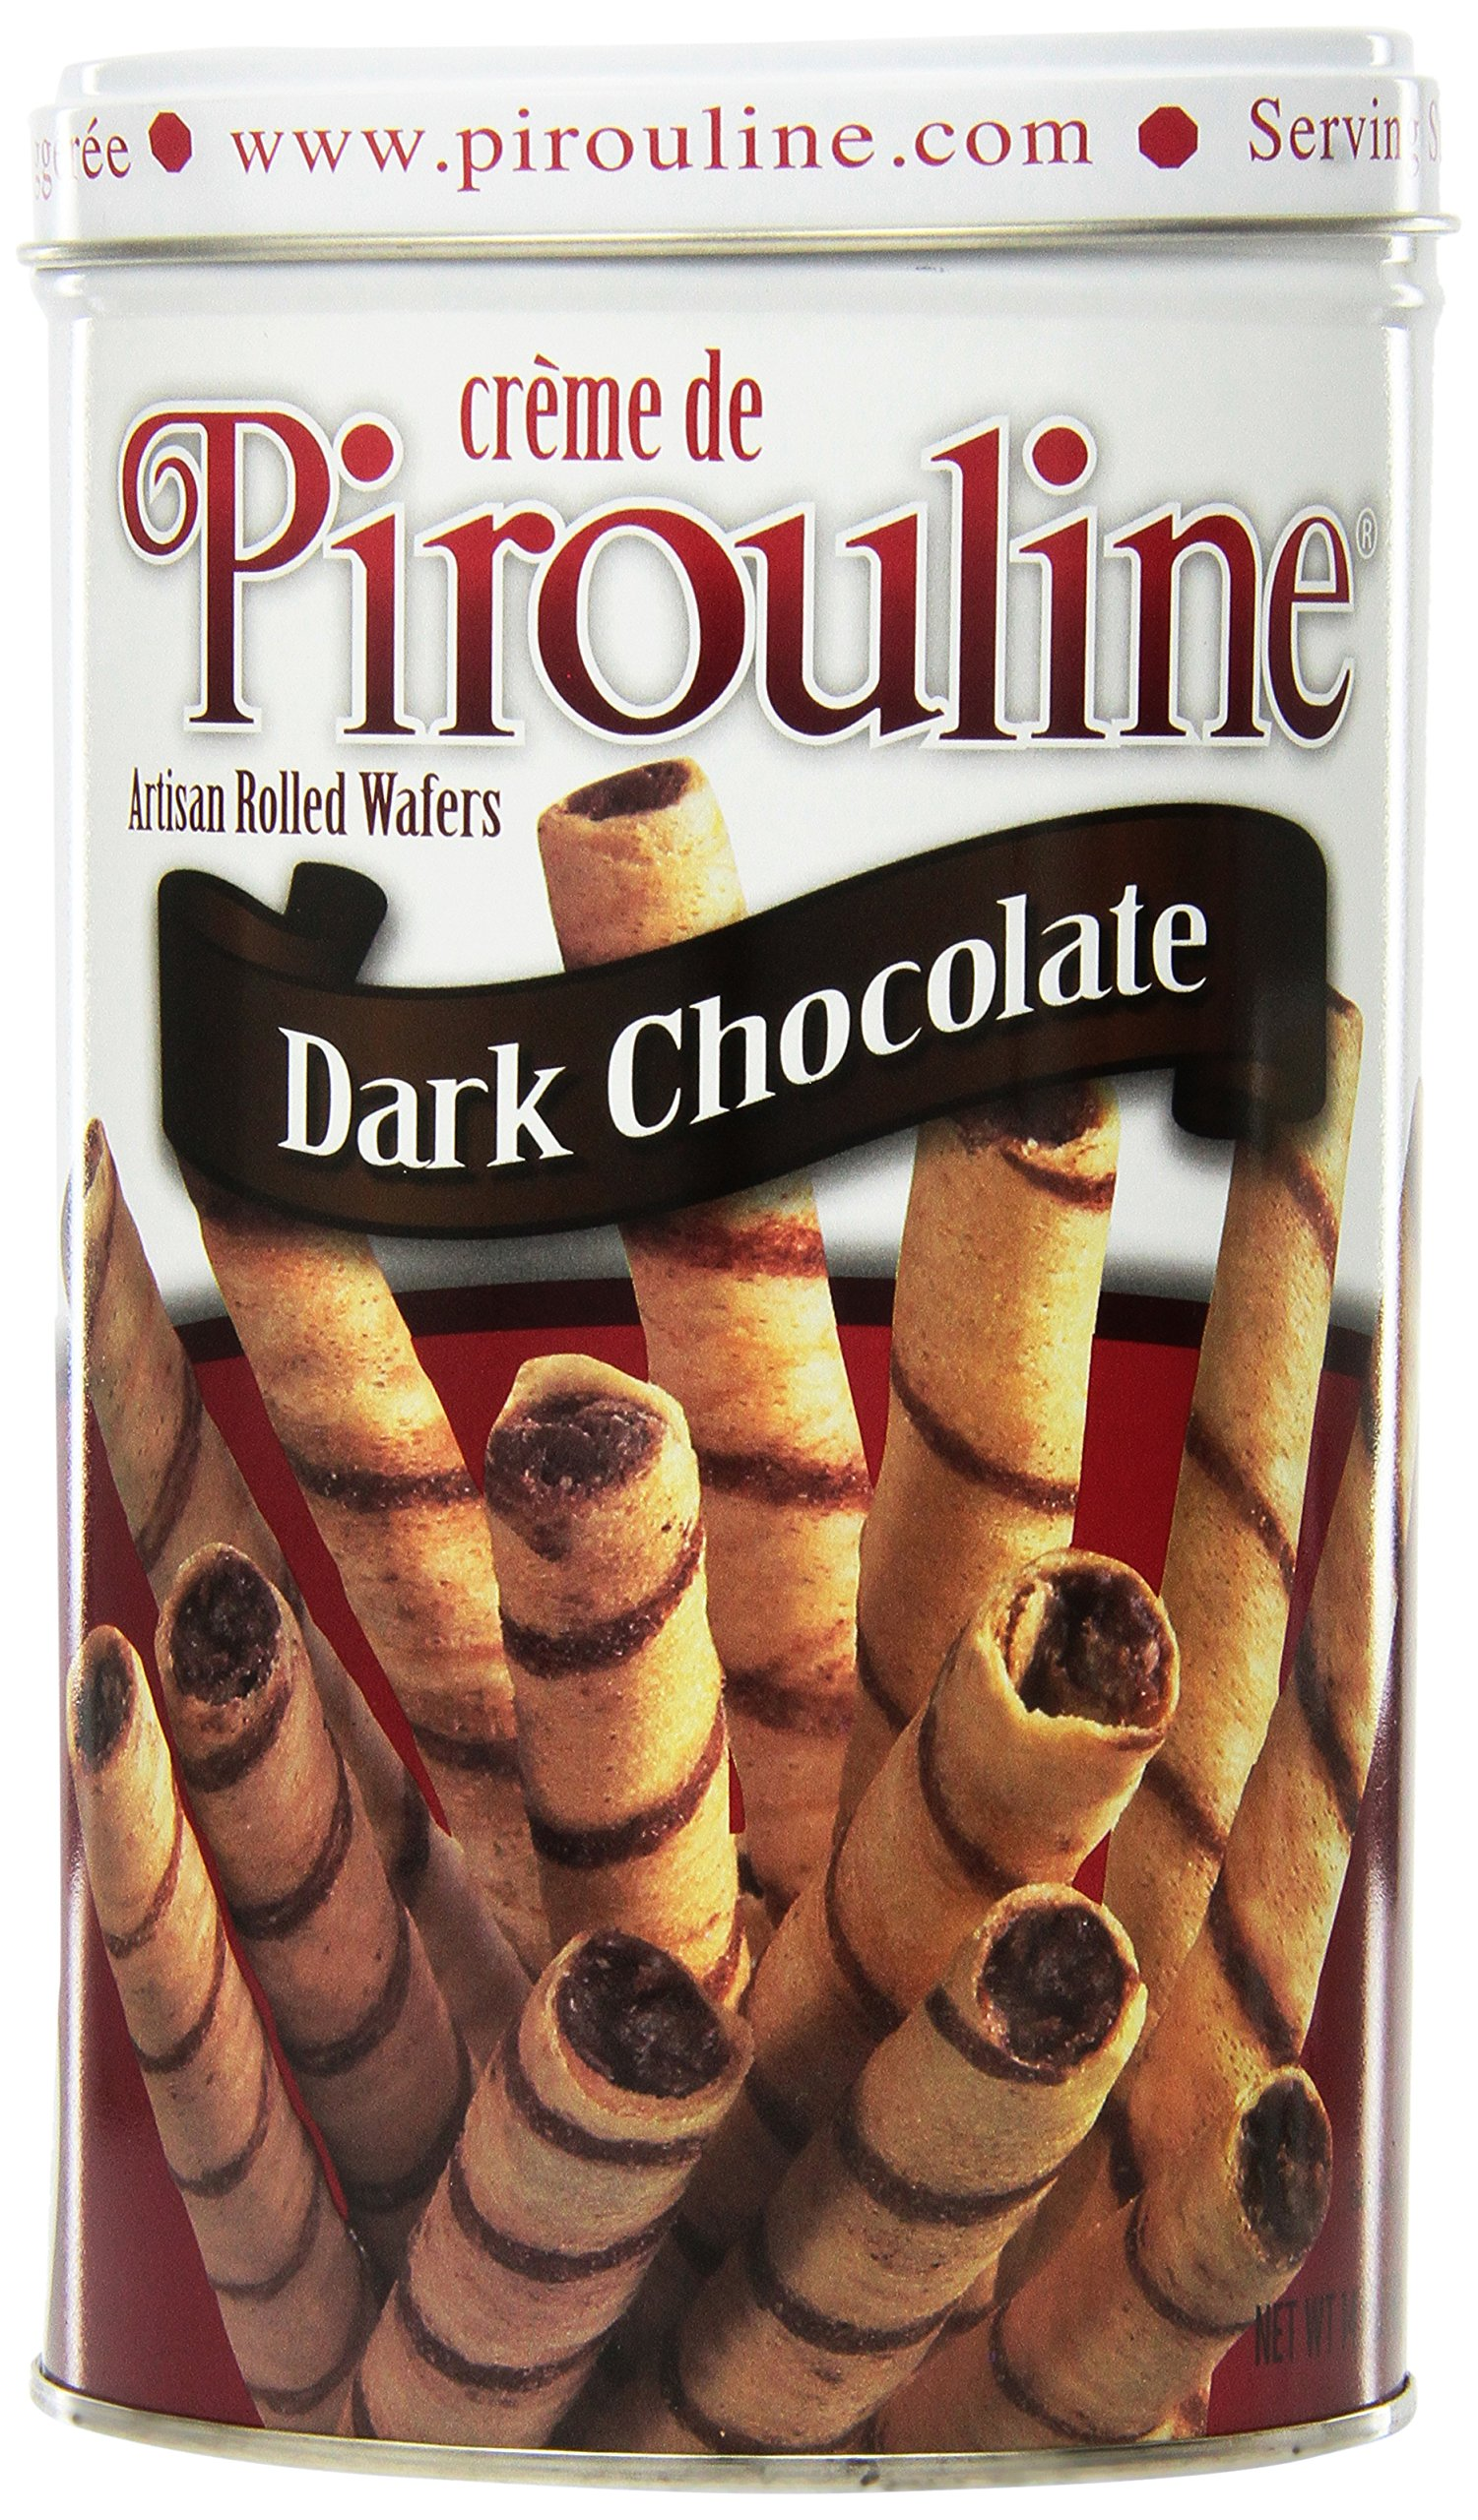 Pirouline Rolled Wafers, Dark Chocolate, 14-Ounce Tins (Pack of 6)